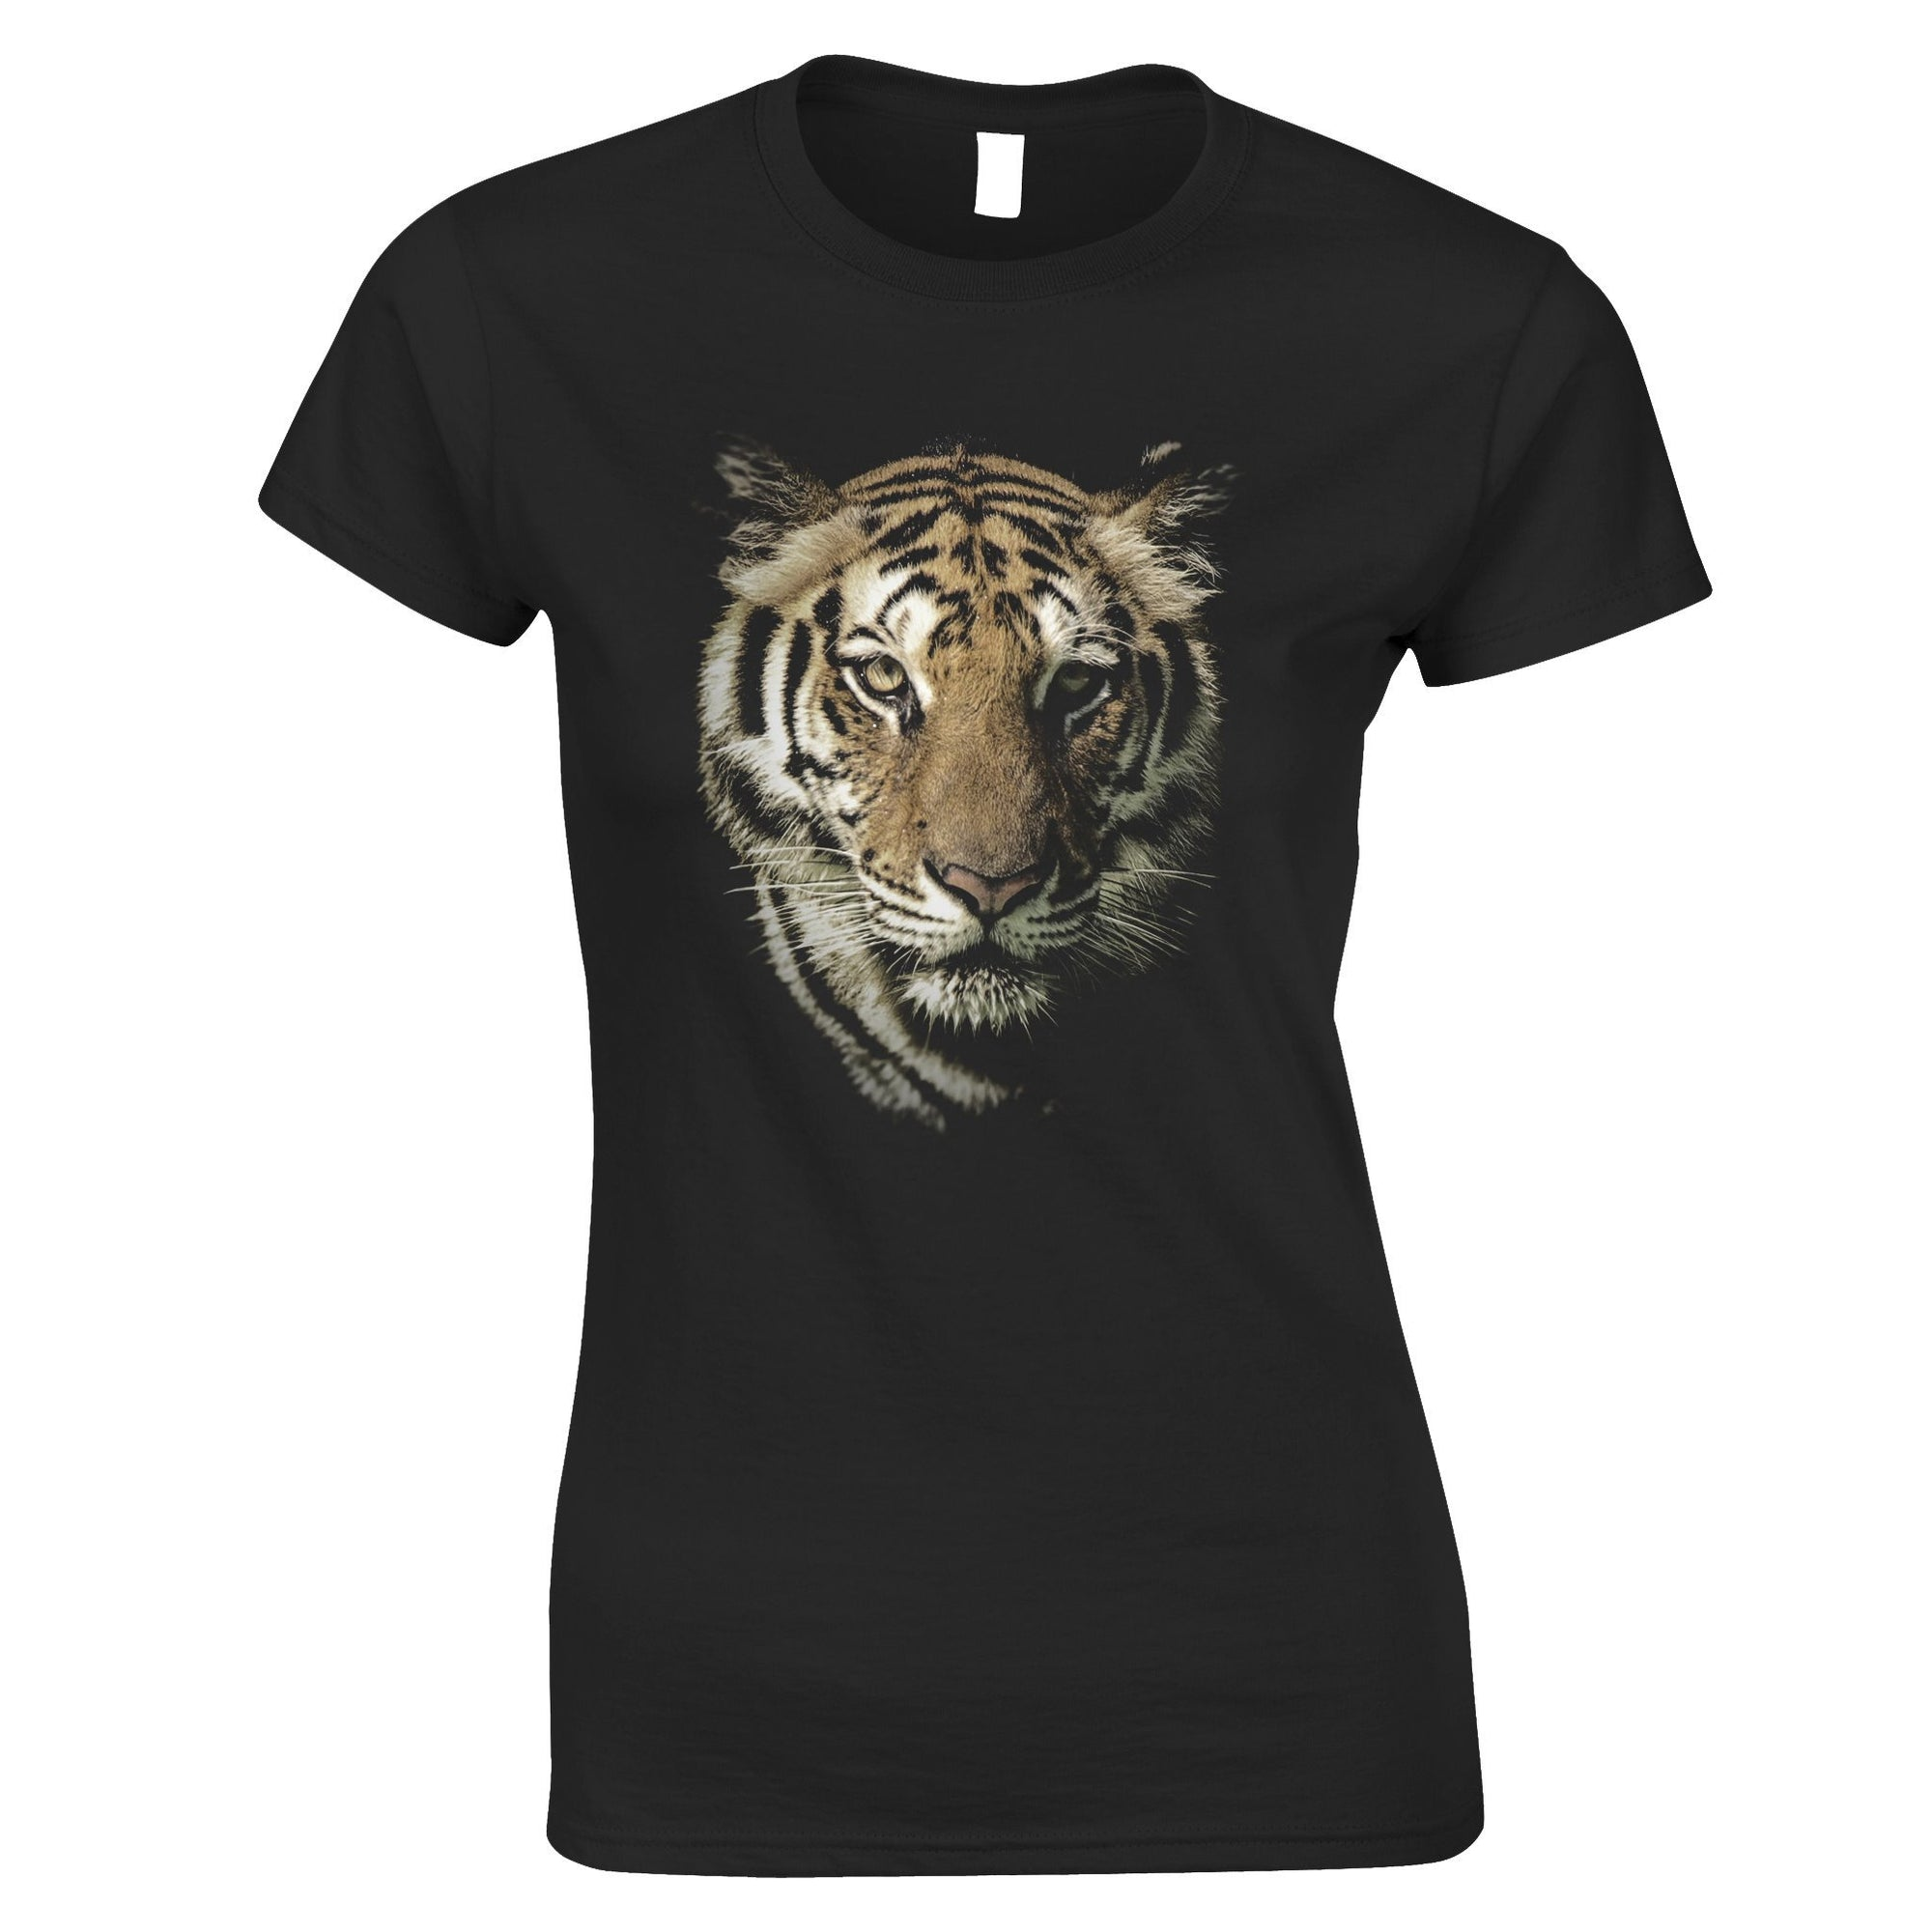 Tiger Face Womens TShirt Majestic Big Cat Head